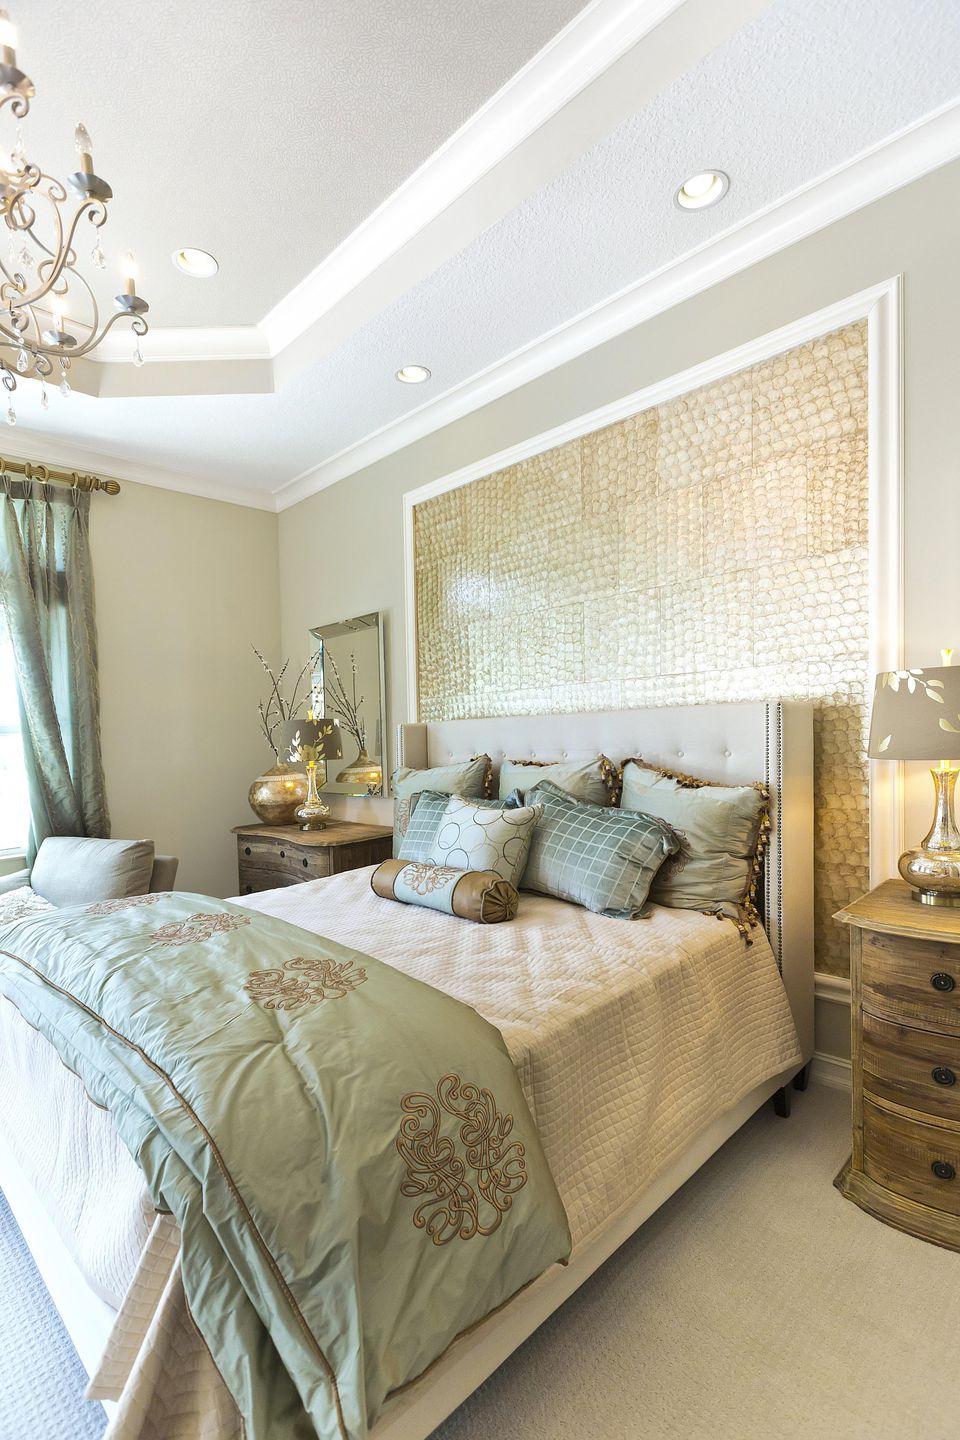 beautiful bed jpg. How to Make the Bed So It Looks Beautiful